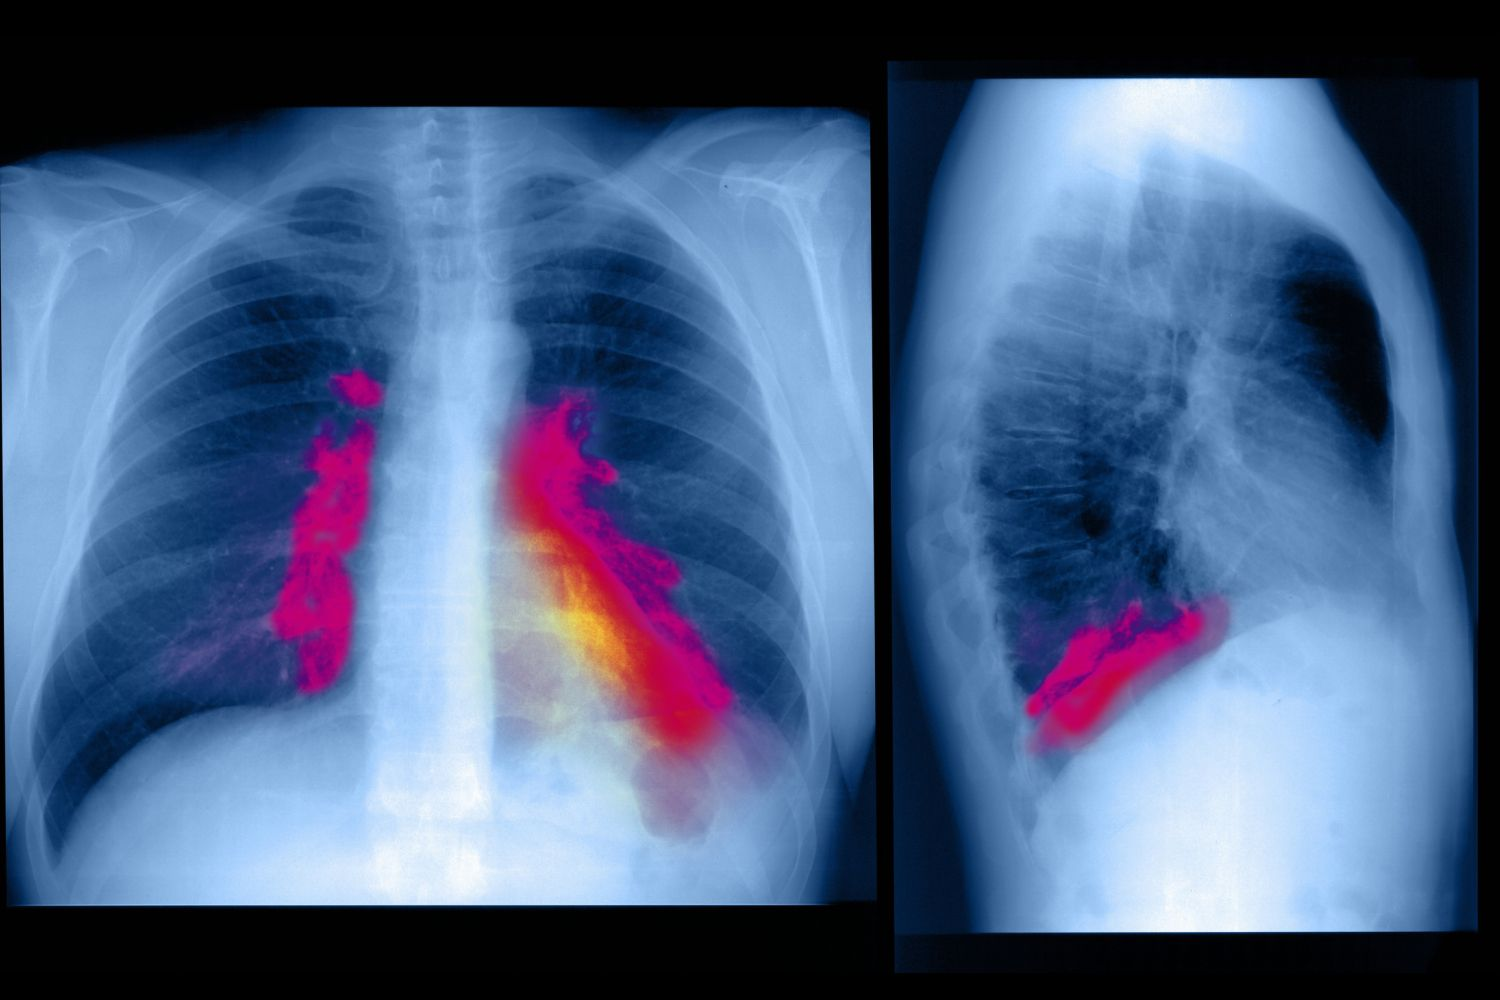 Respiratory Infection of the Lung